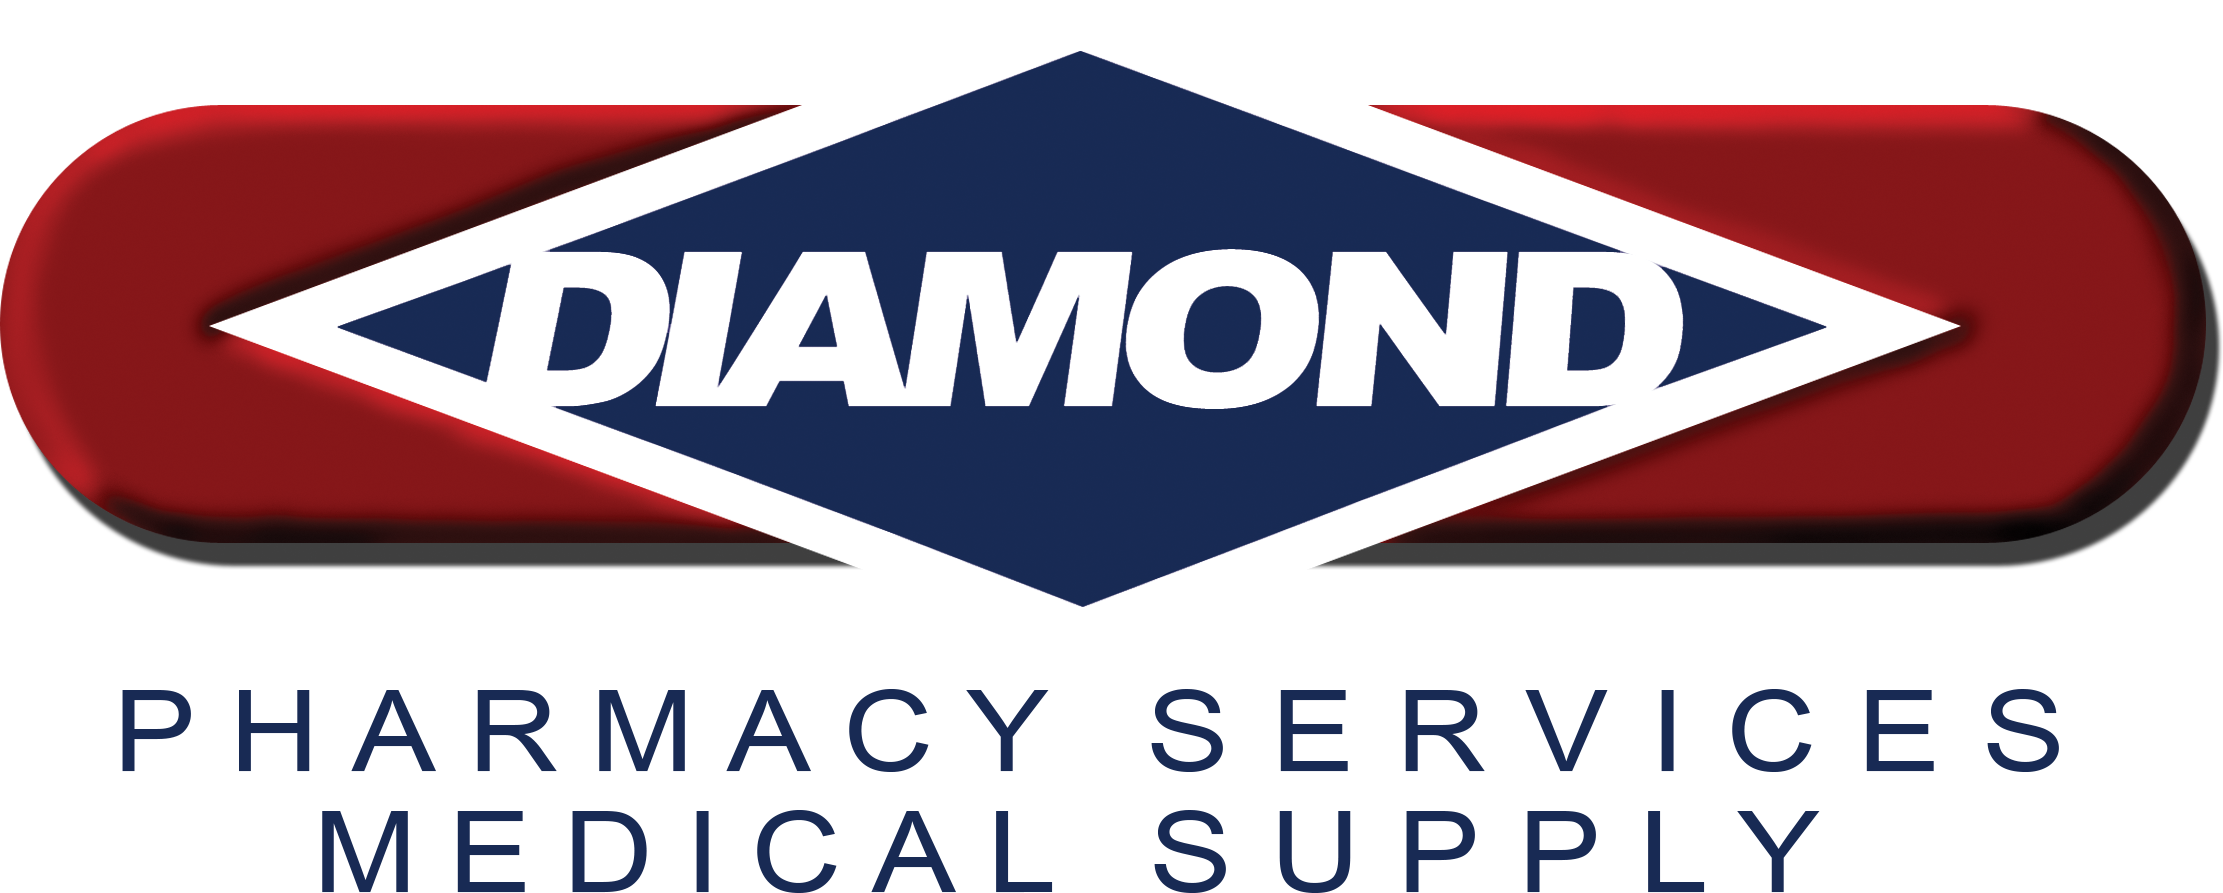 Diamond Pharmacy Services Logo